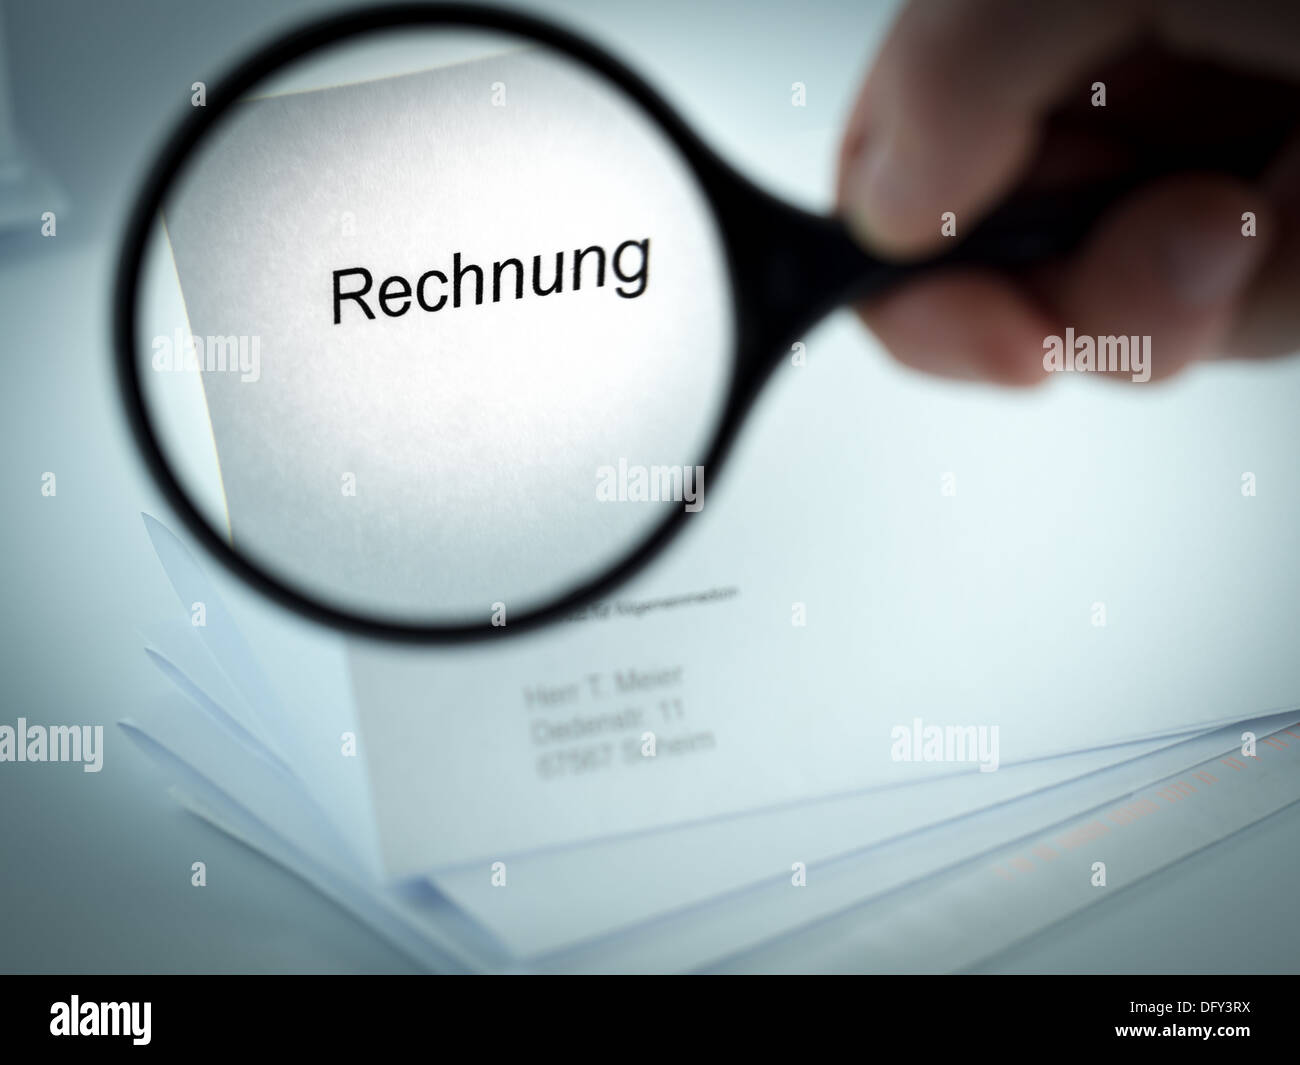 Cover letter with the word Rechnung in the letterhead - Stock Image